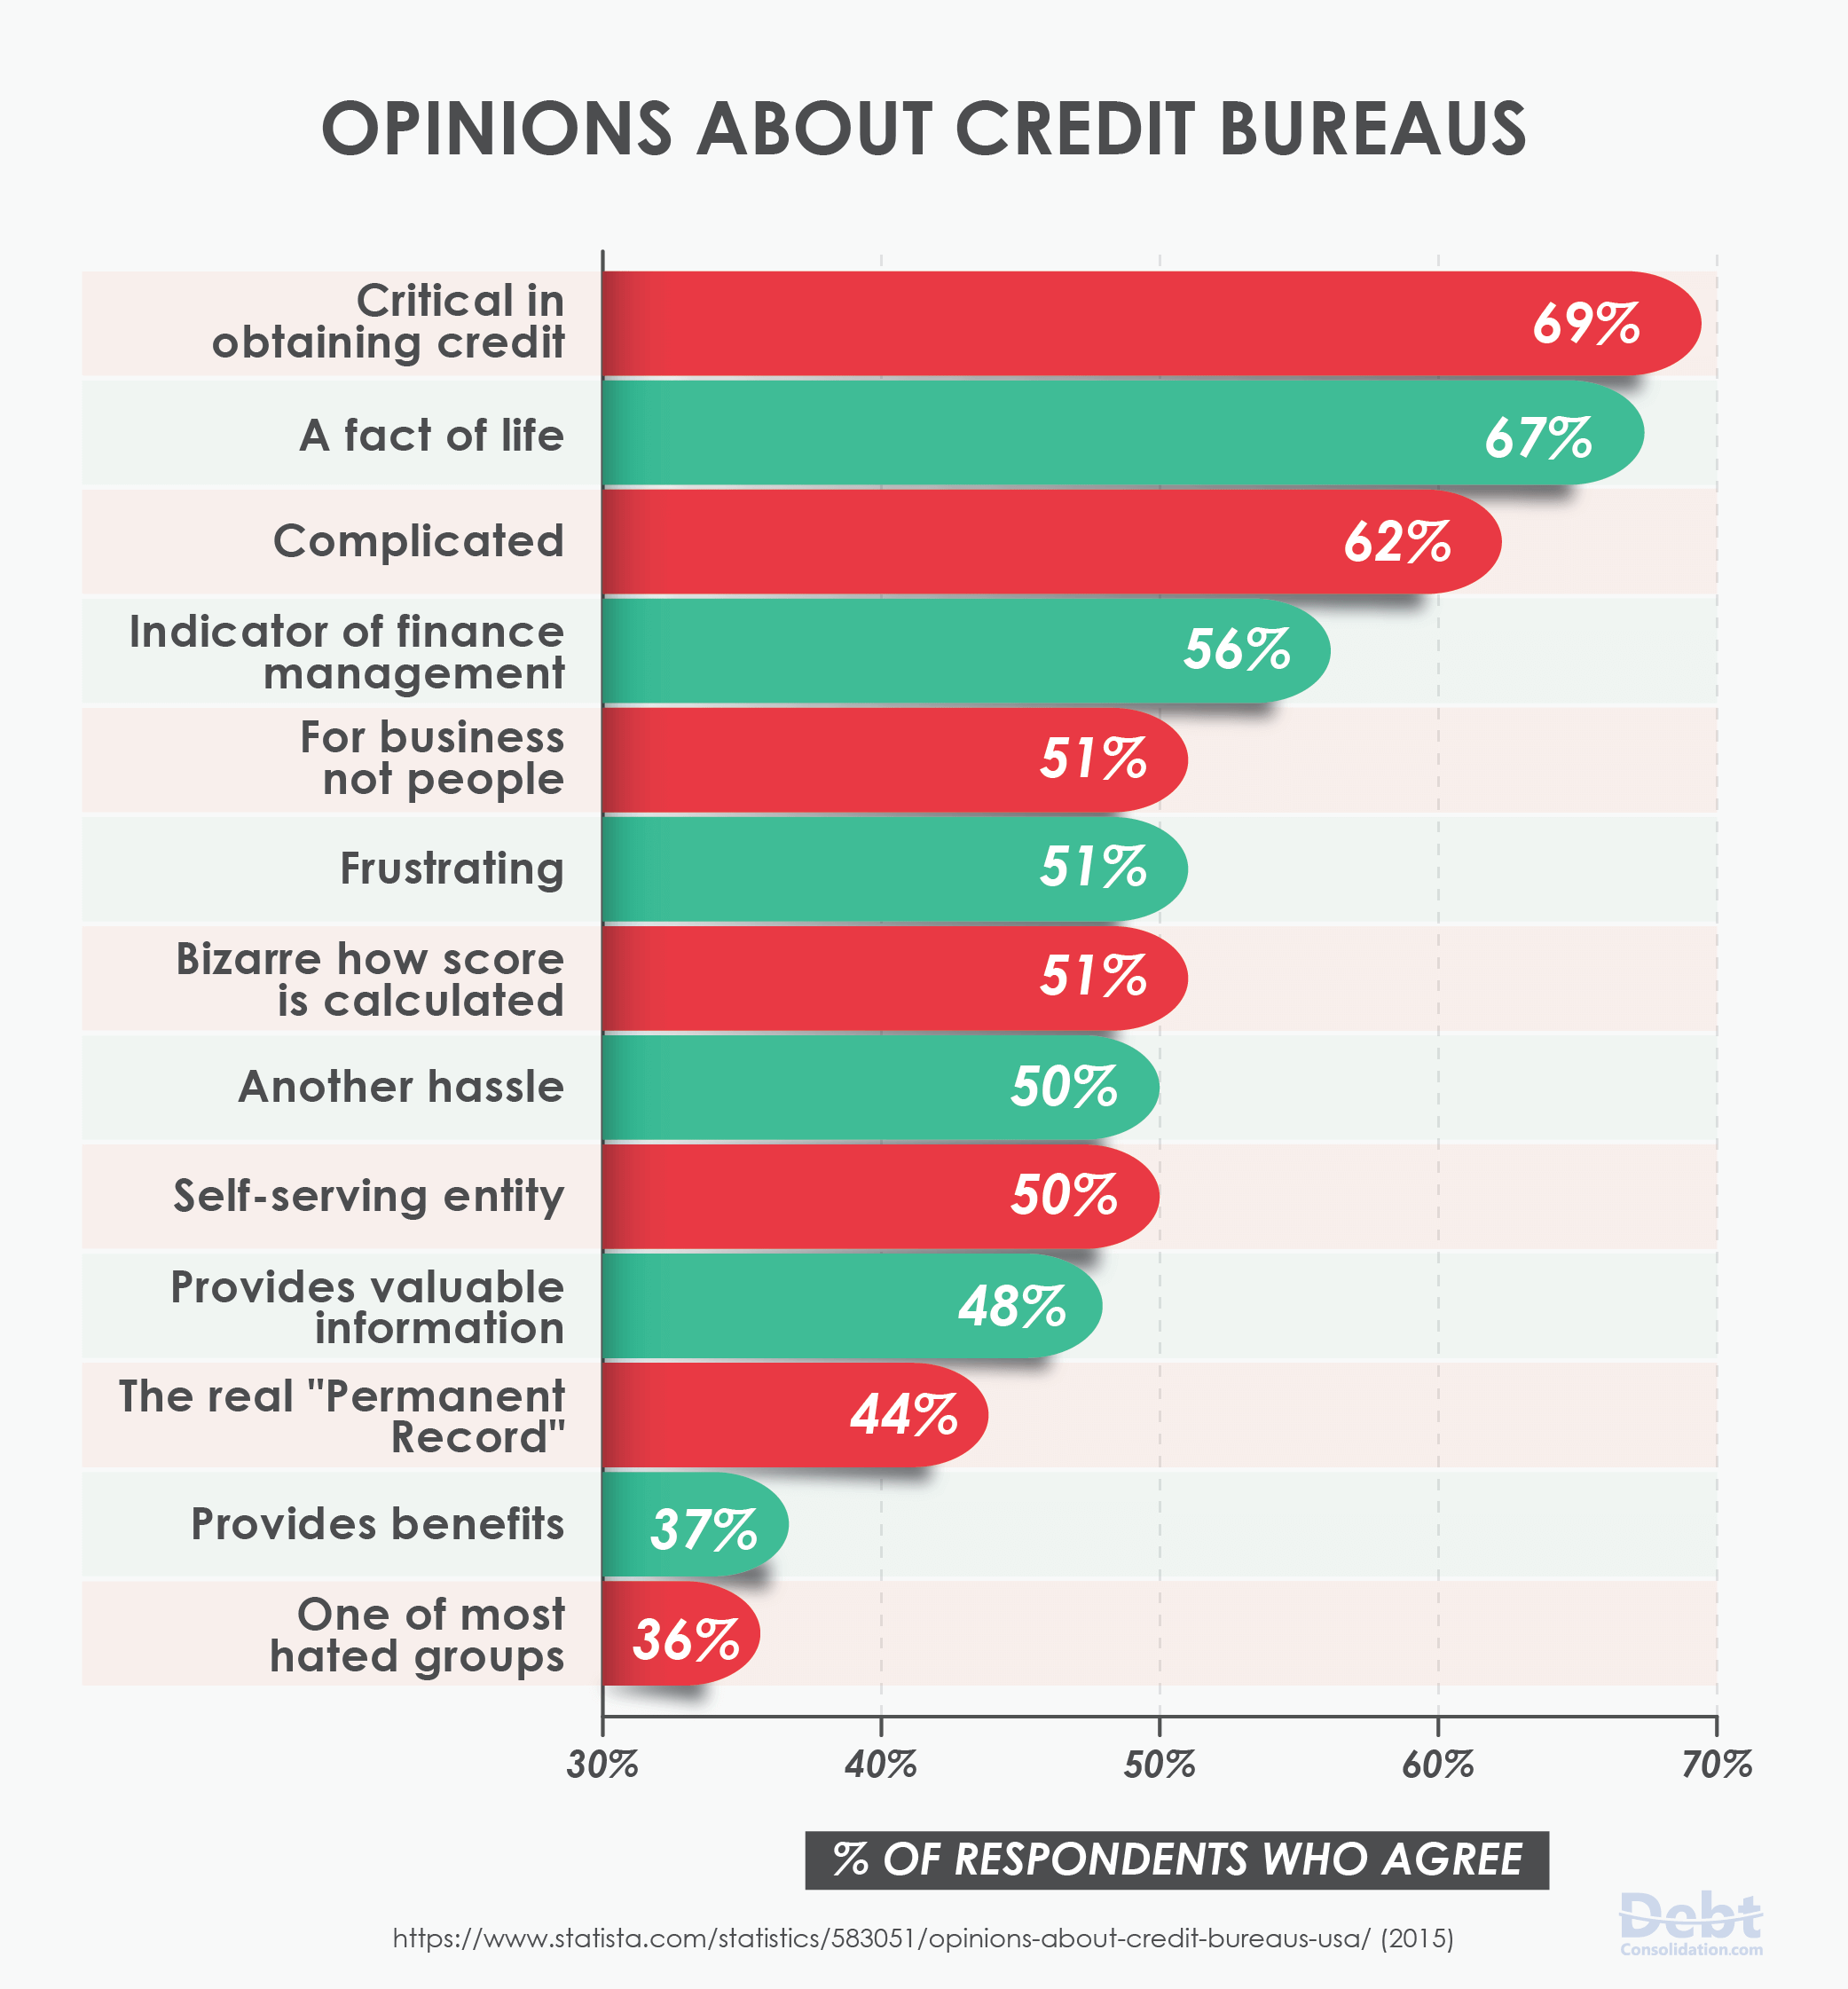 Americans' Opinions About Credit Bureaus